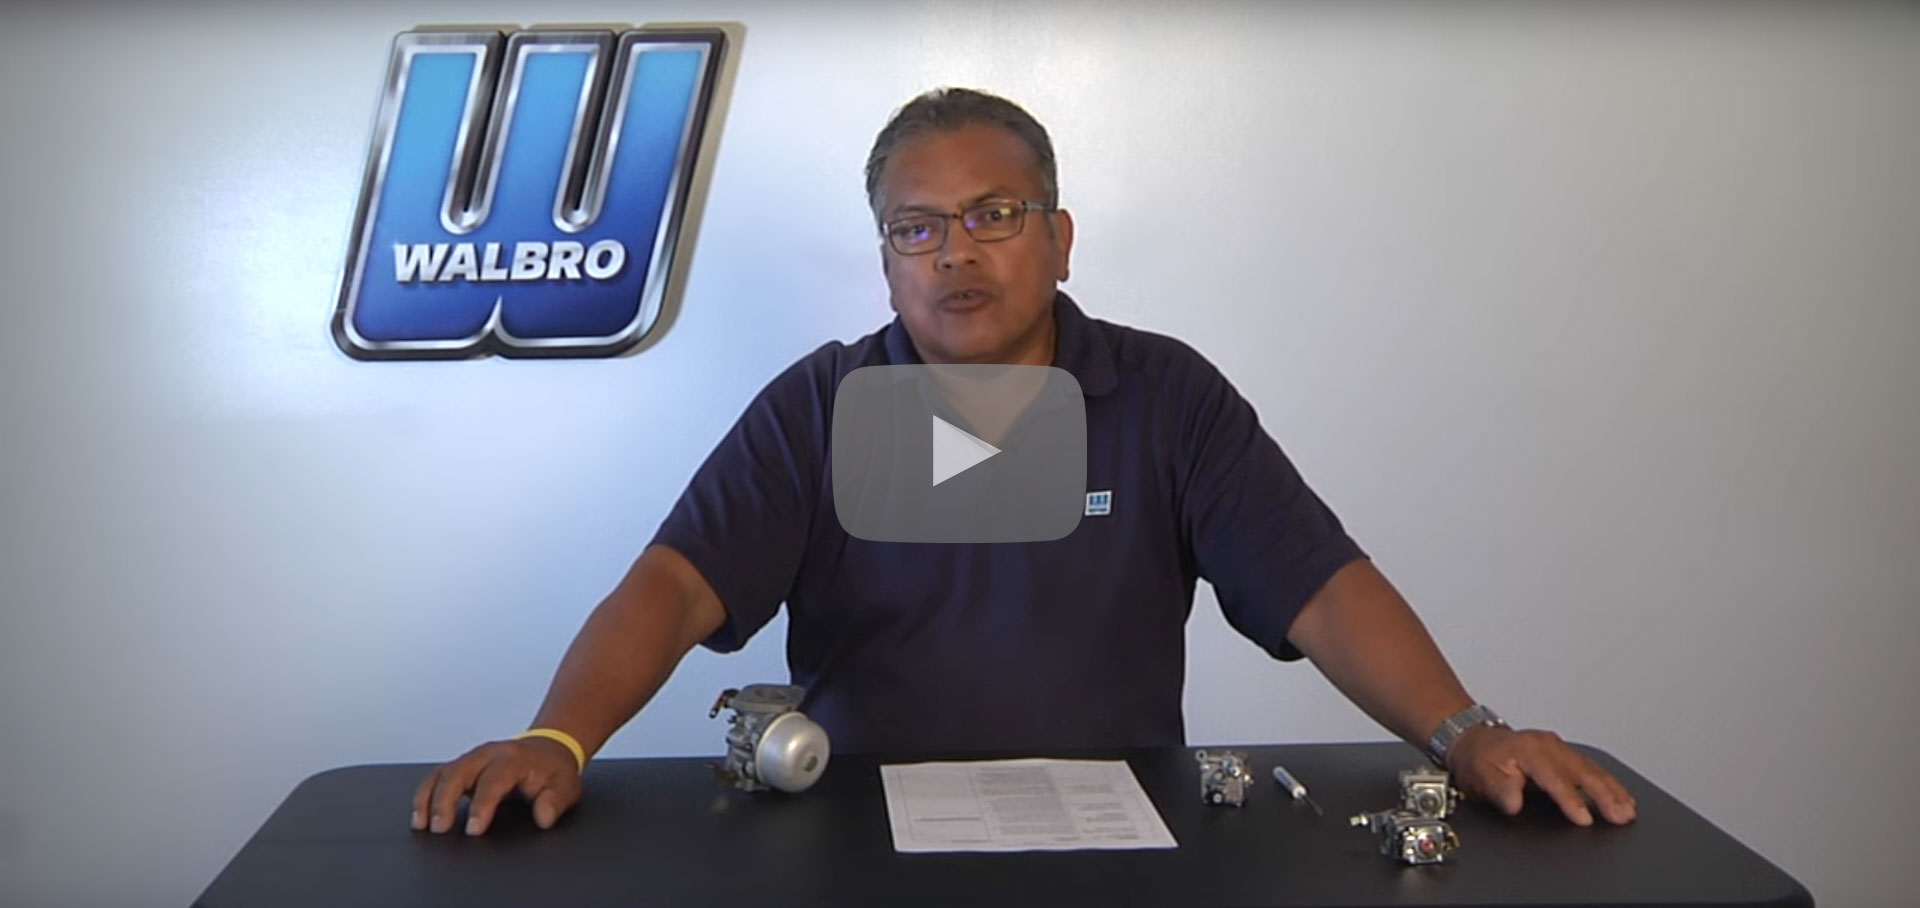 How To Find The Part Number On A Walbro Carburetor Small Engine Fuel Filter